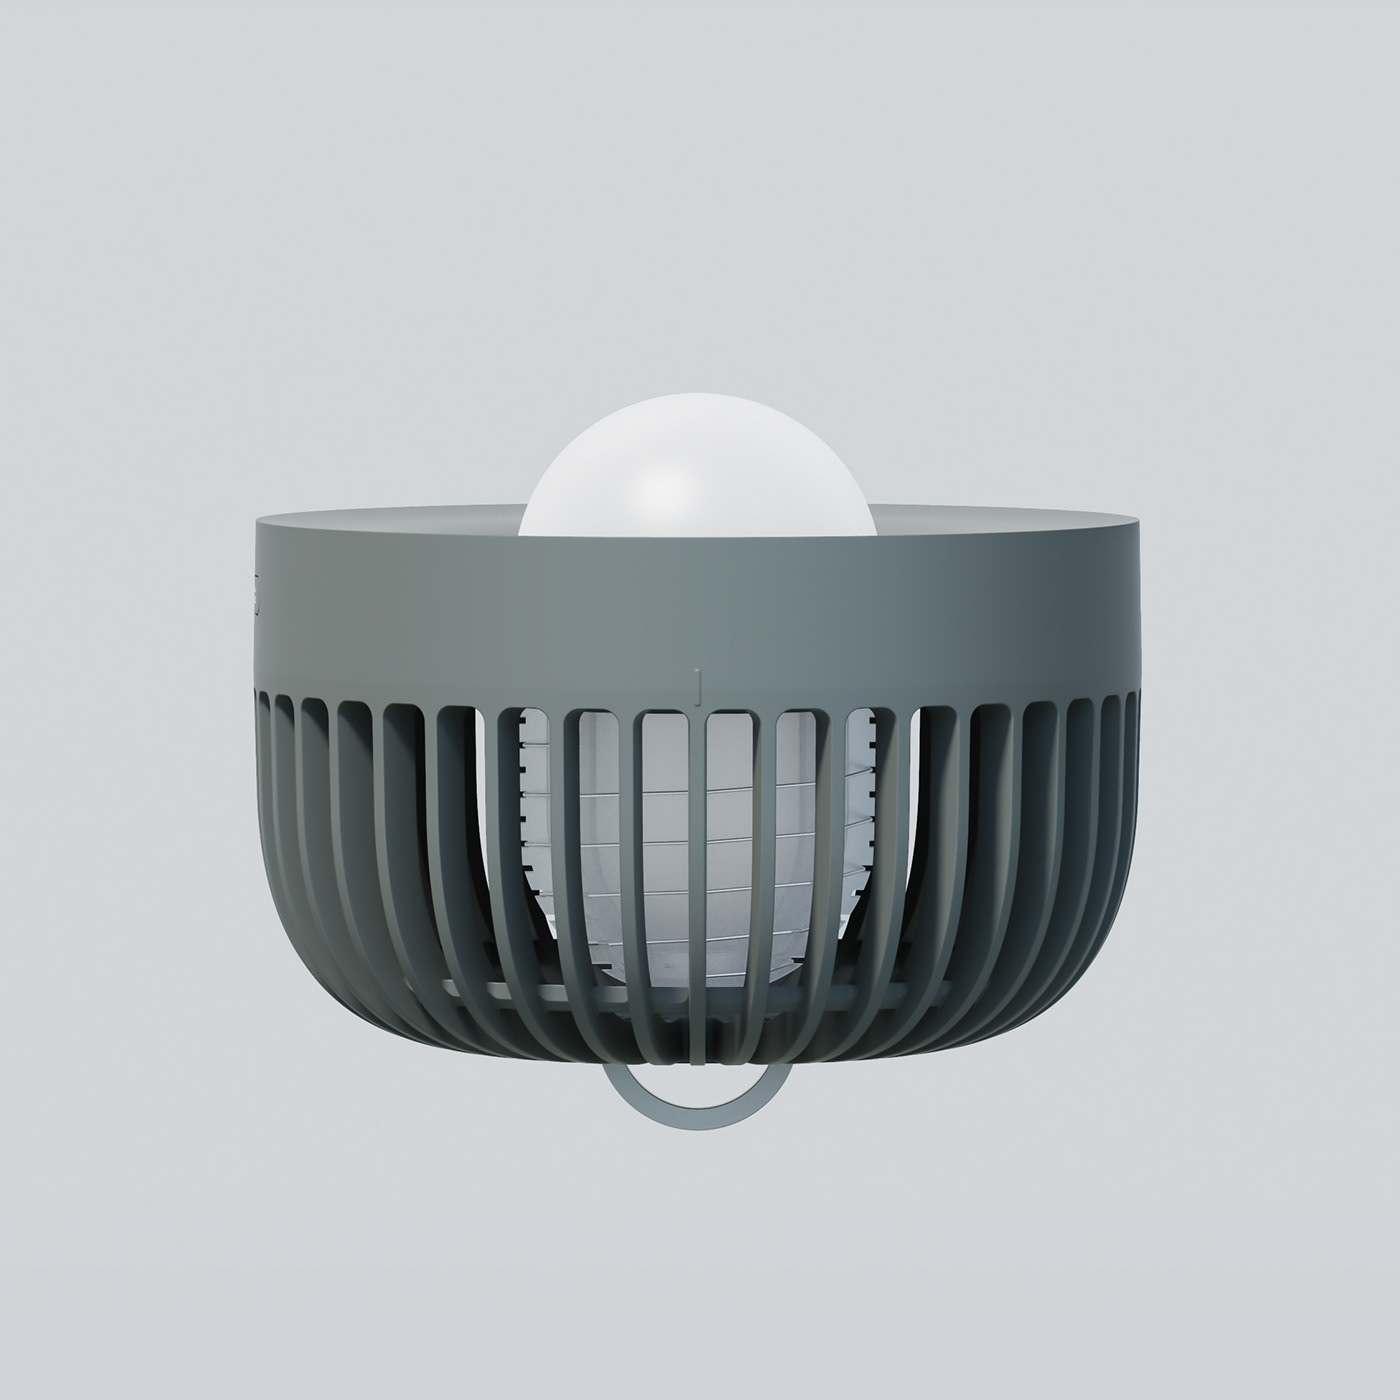 mosquito Mosquito Killer Nature second white secondwhite birdcage industrial Lamp producdesign product